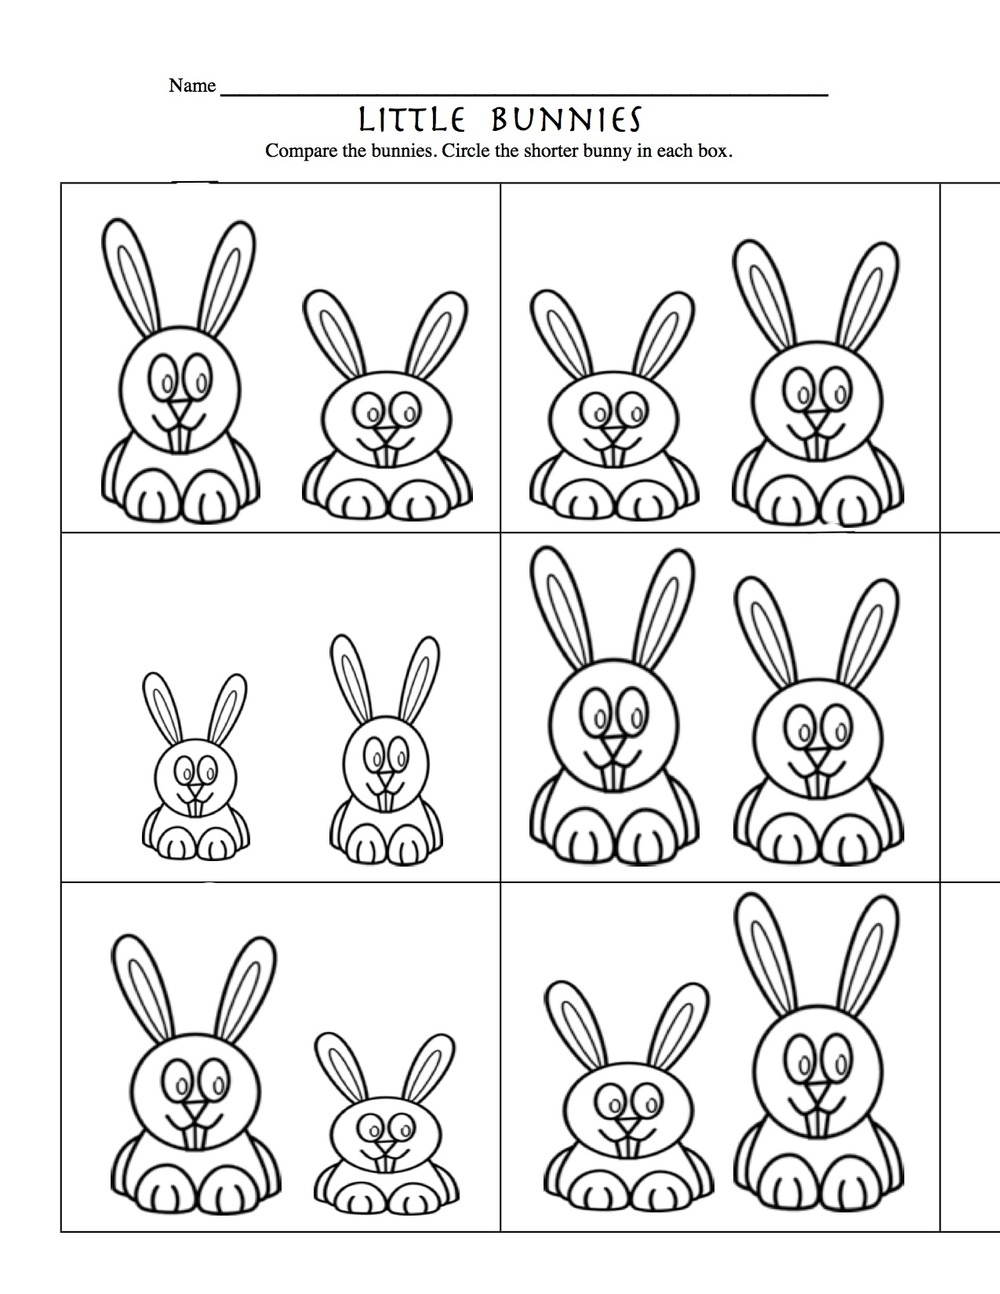 Worksheet: 10Th Exam Time Table Short Reading Comprehension Passages - Free Printable Coping Skills Worksheets For Adults